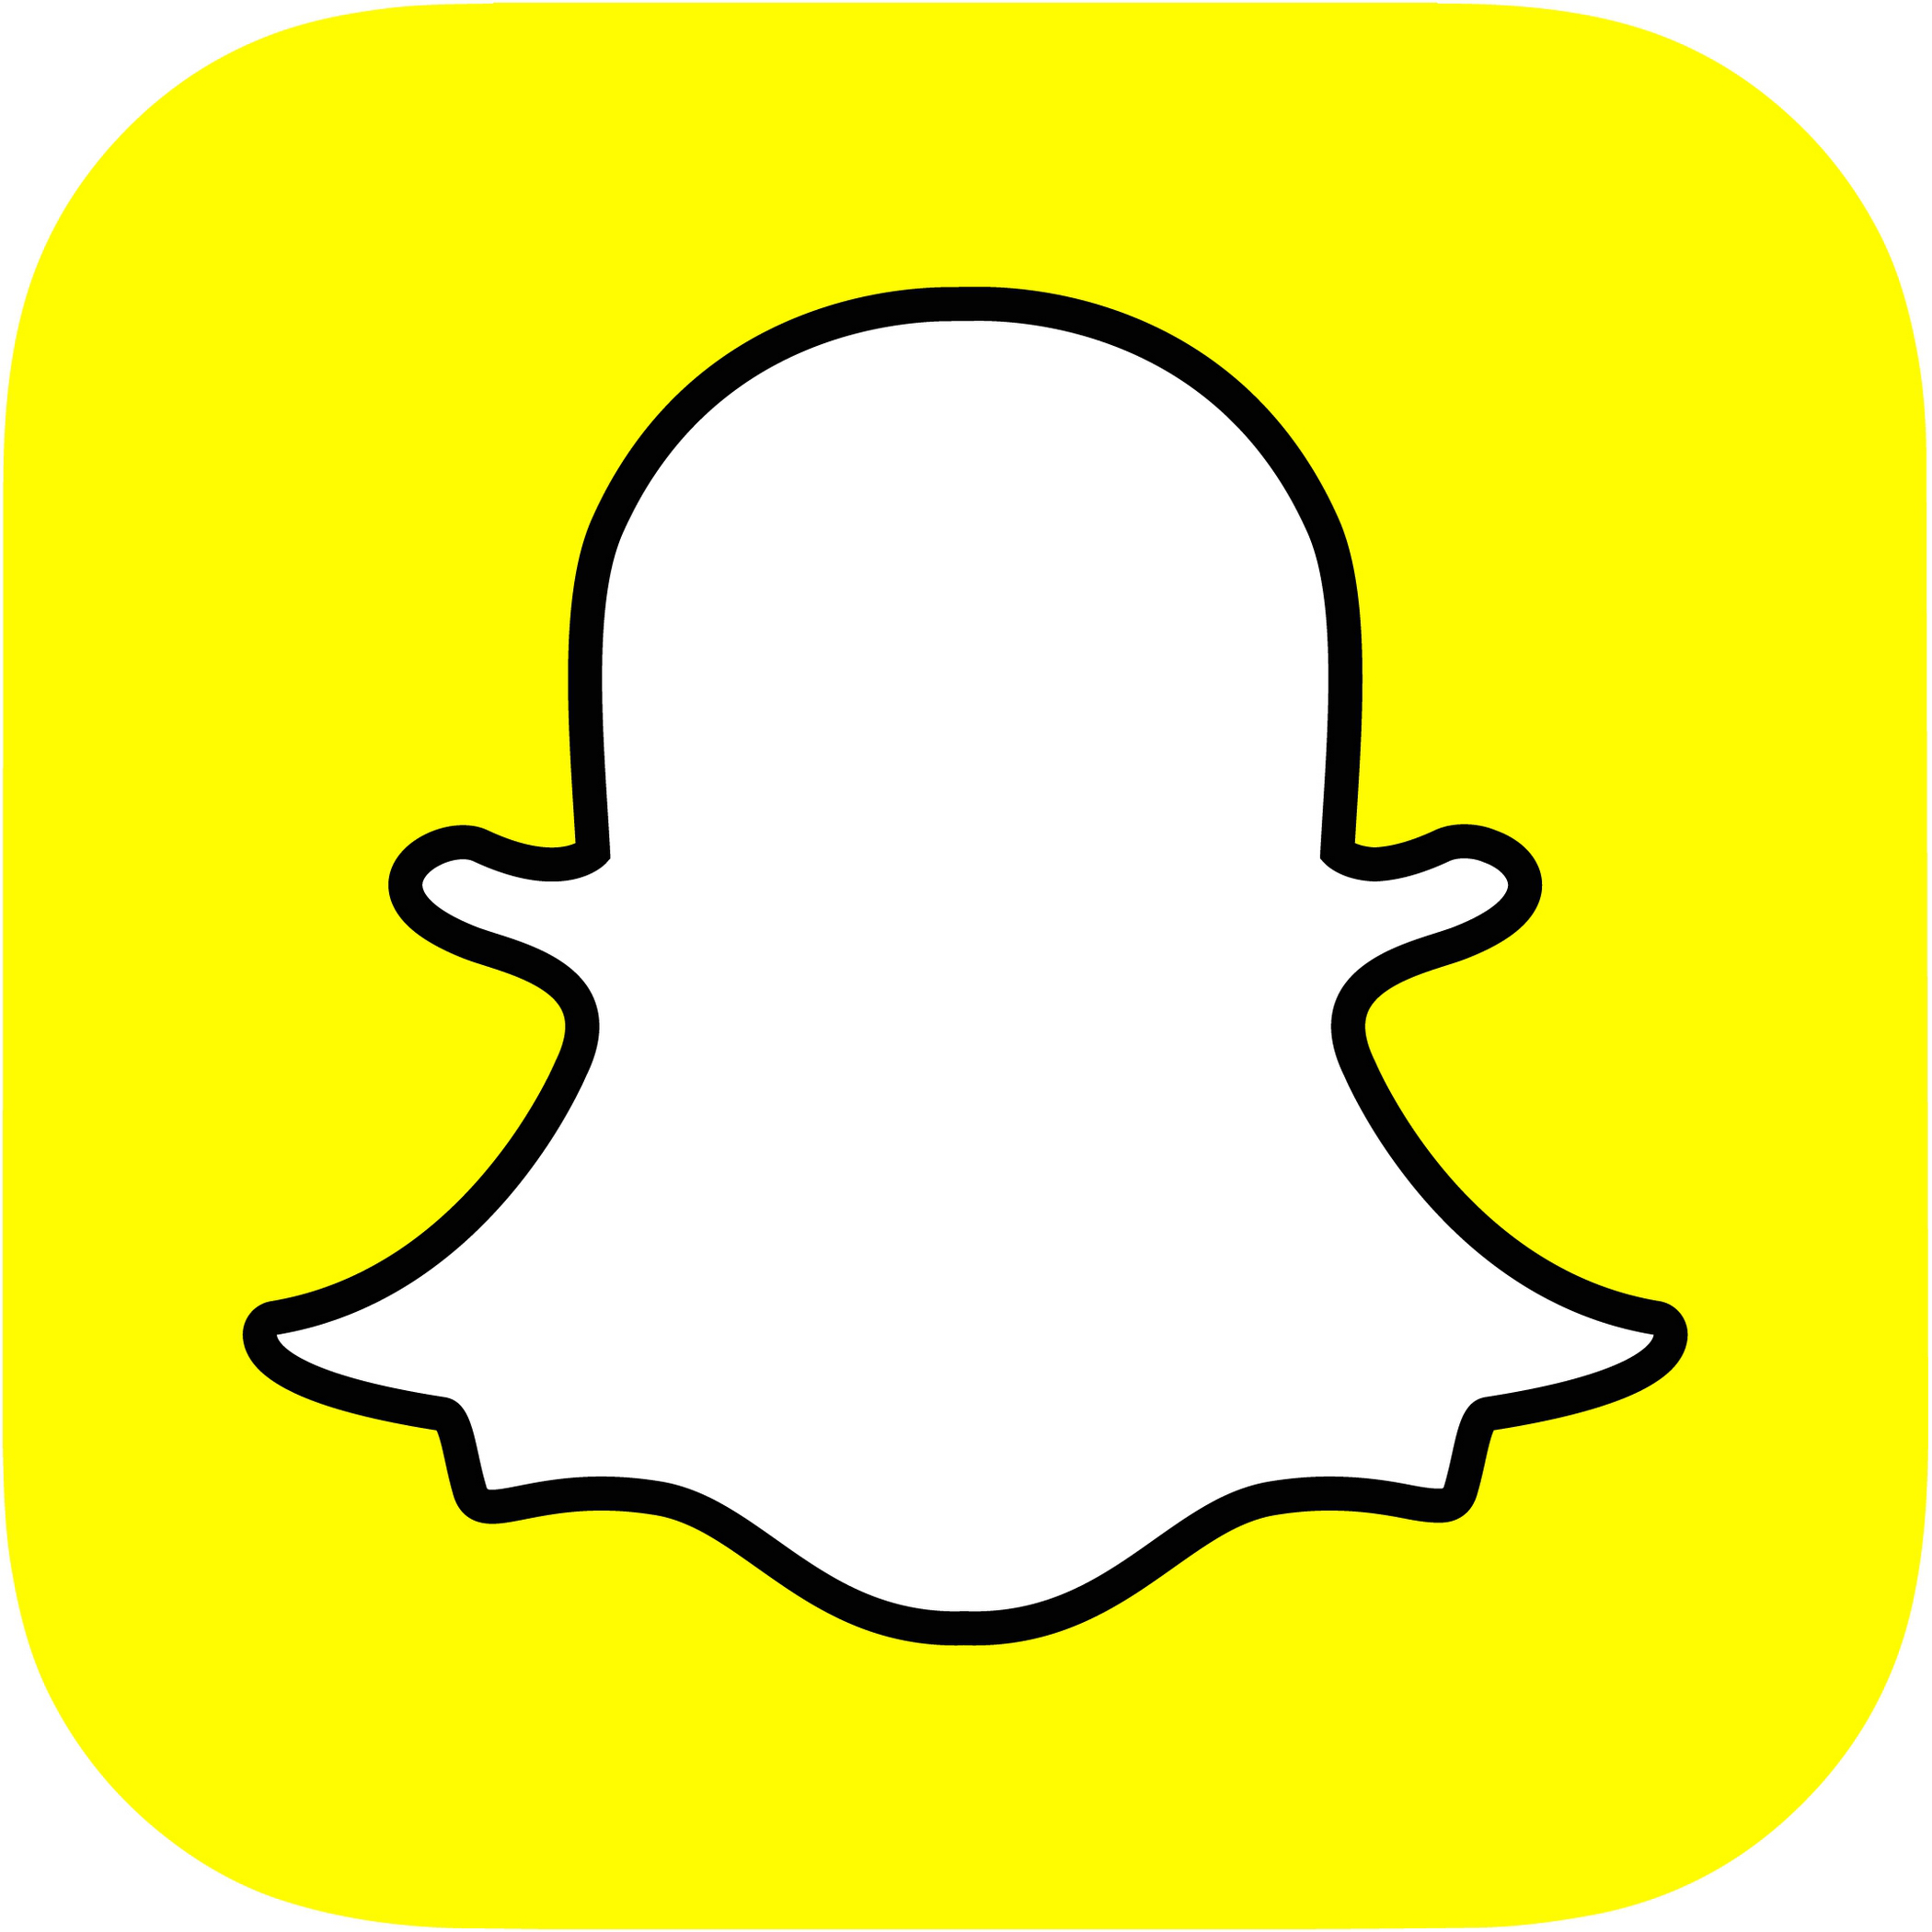 Key clipart animated Snapchat  Animated Snapcode in